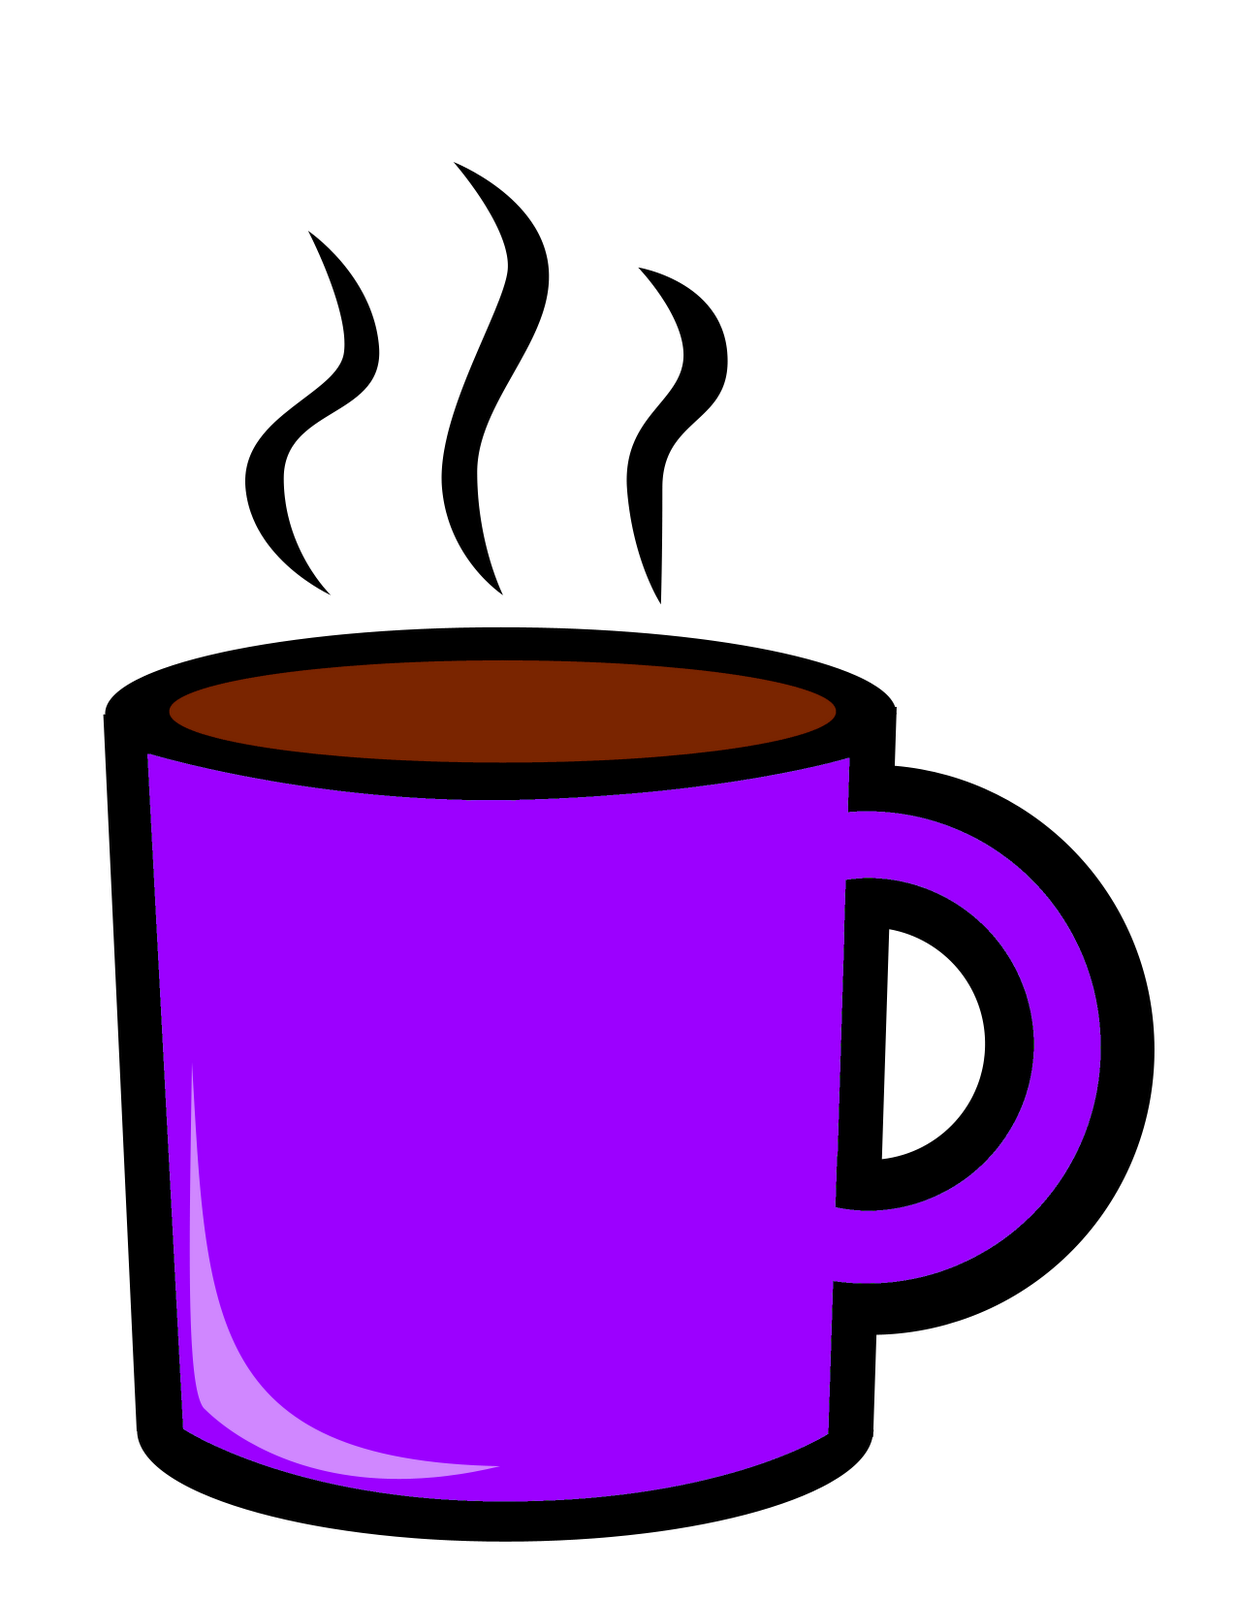 Hot Chocolate Clipart - ClipArt Best